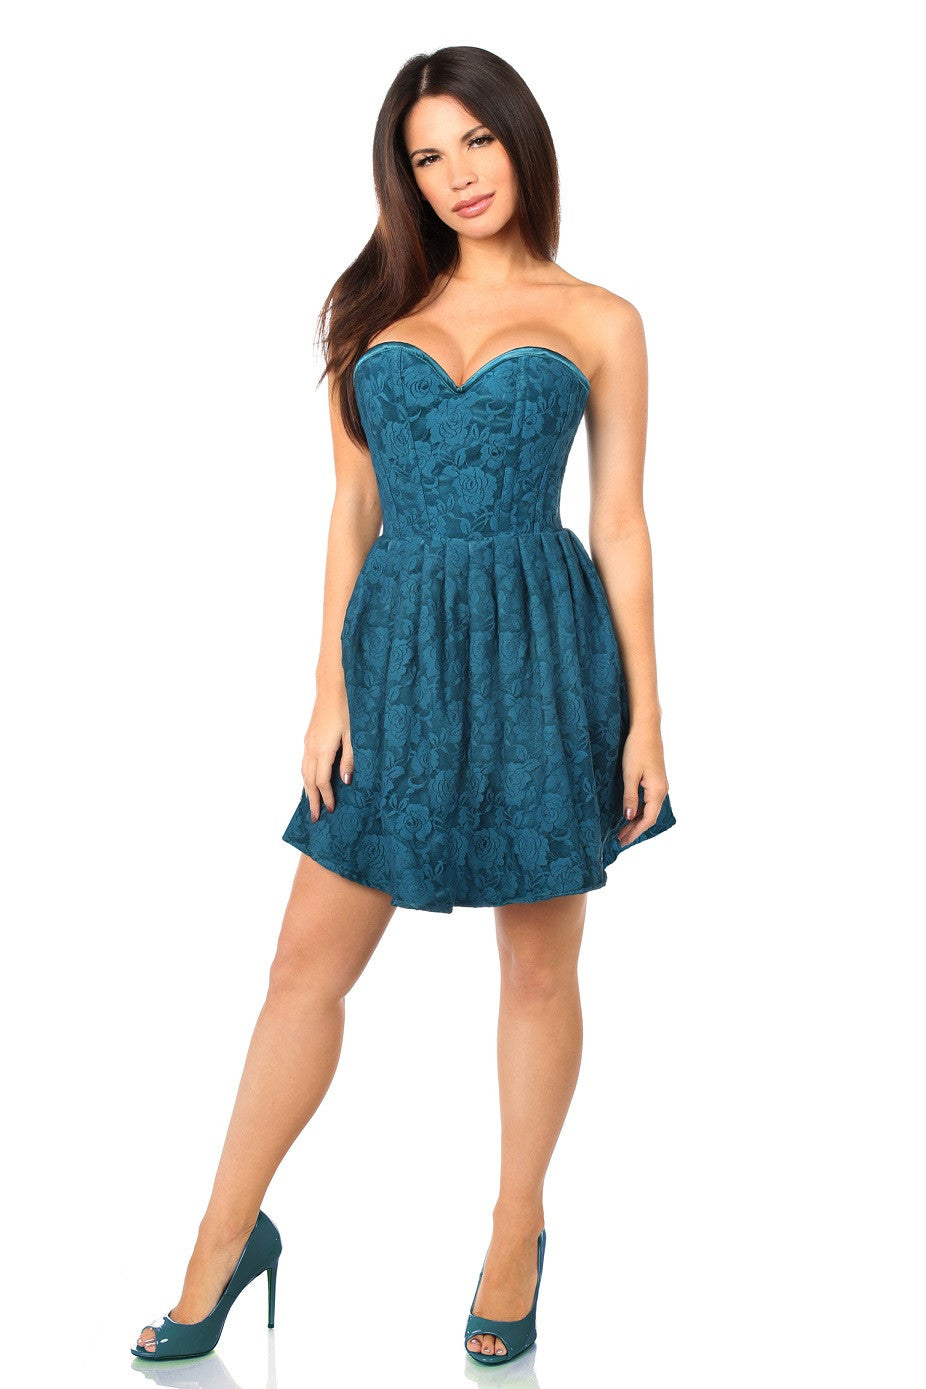 Myrtle Green Empire Corset Party Dress